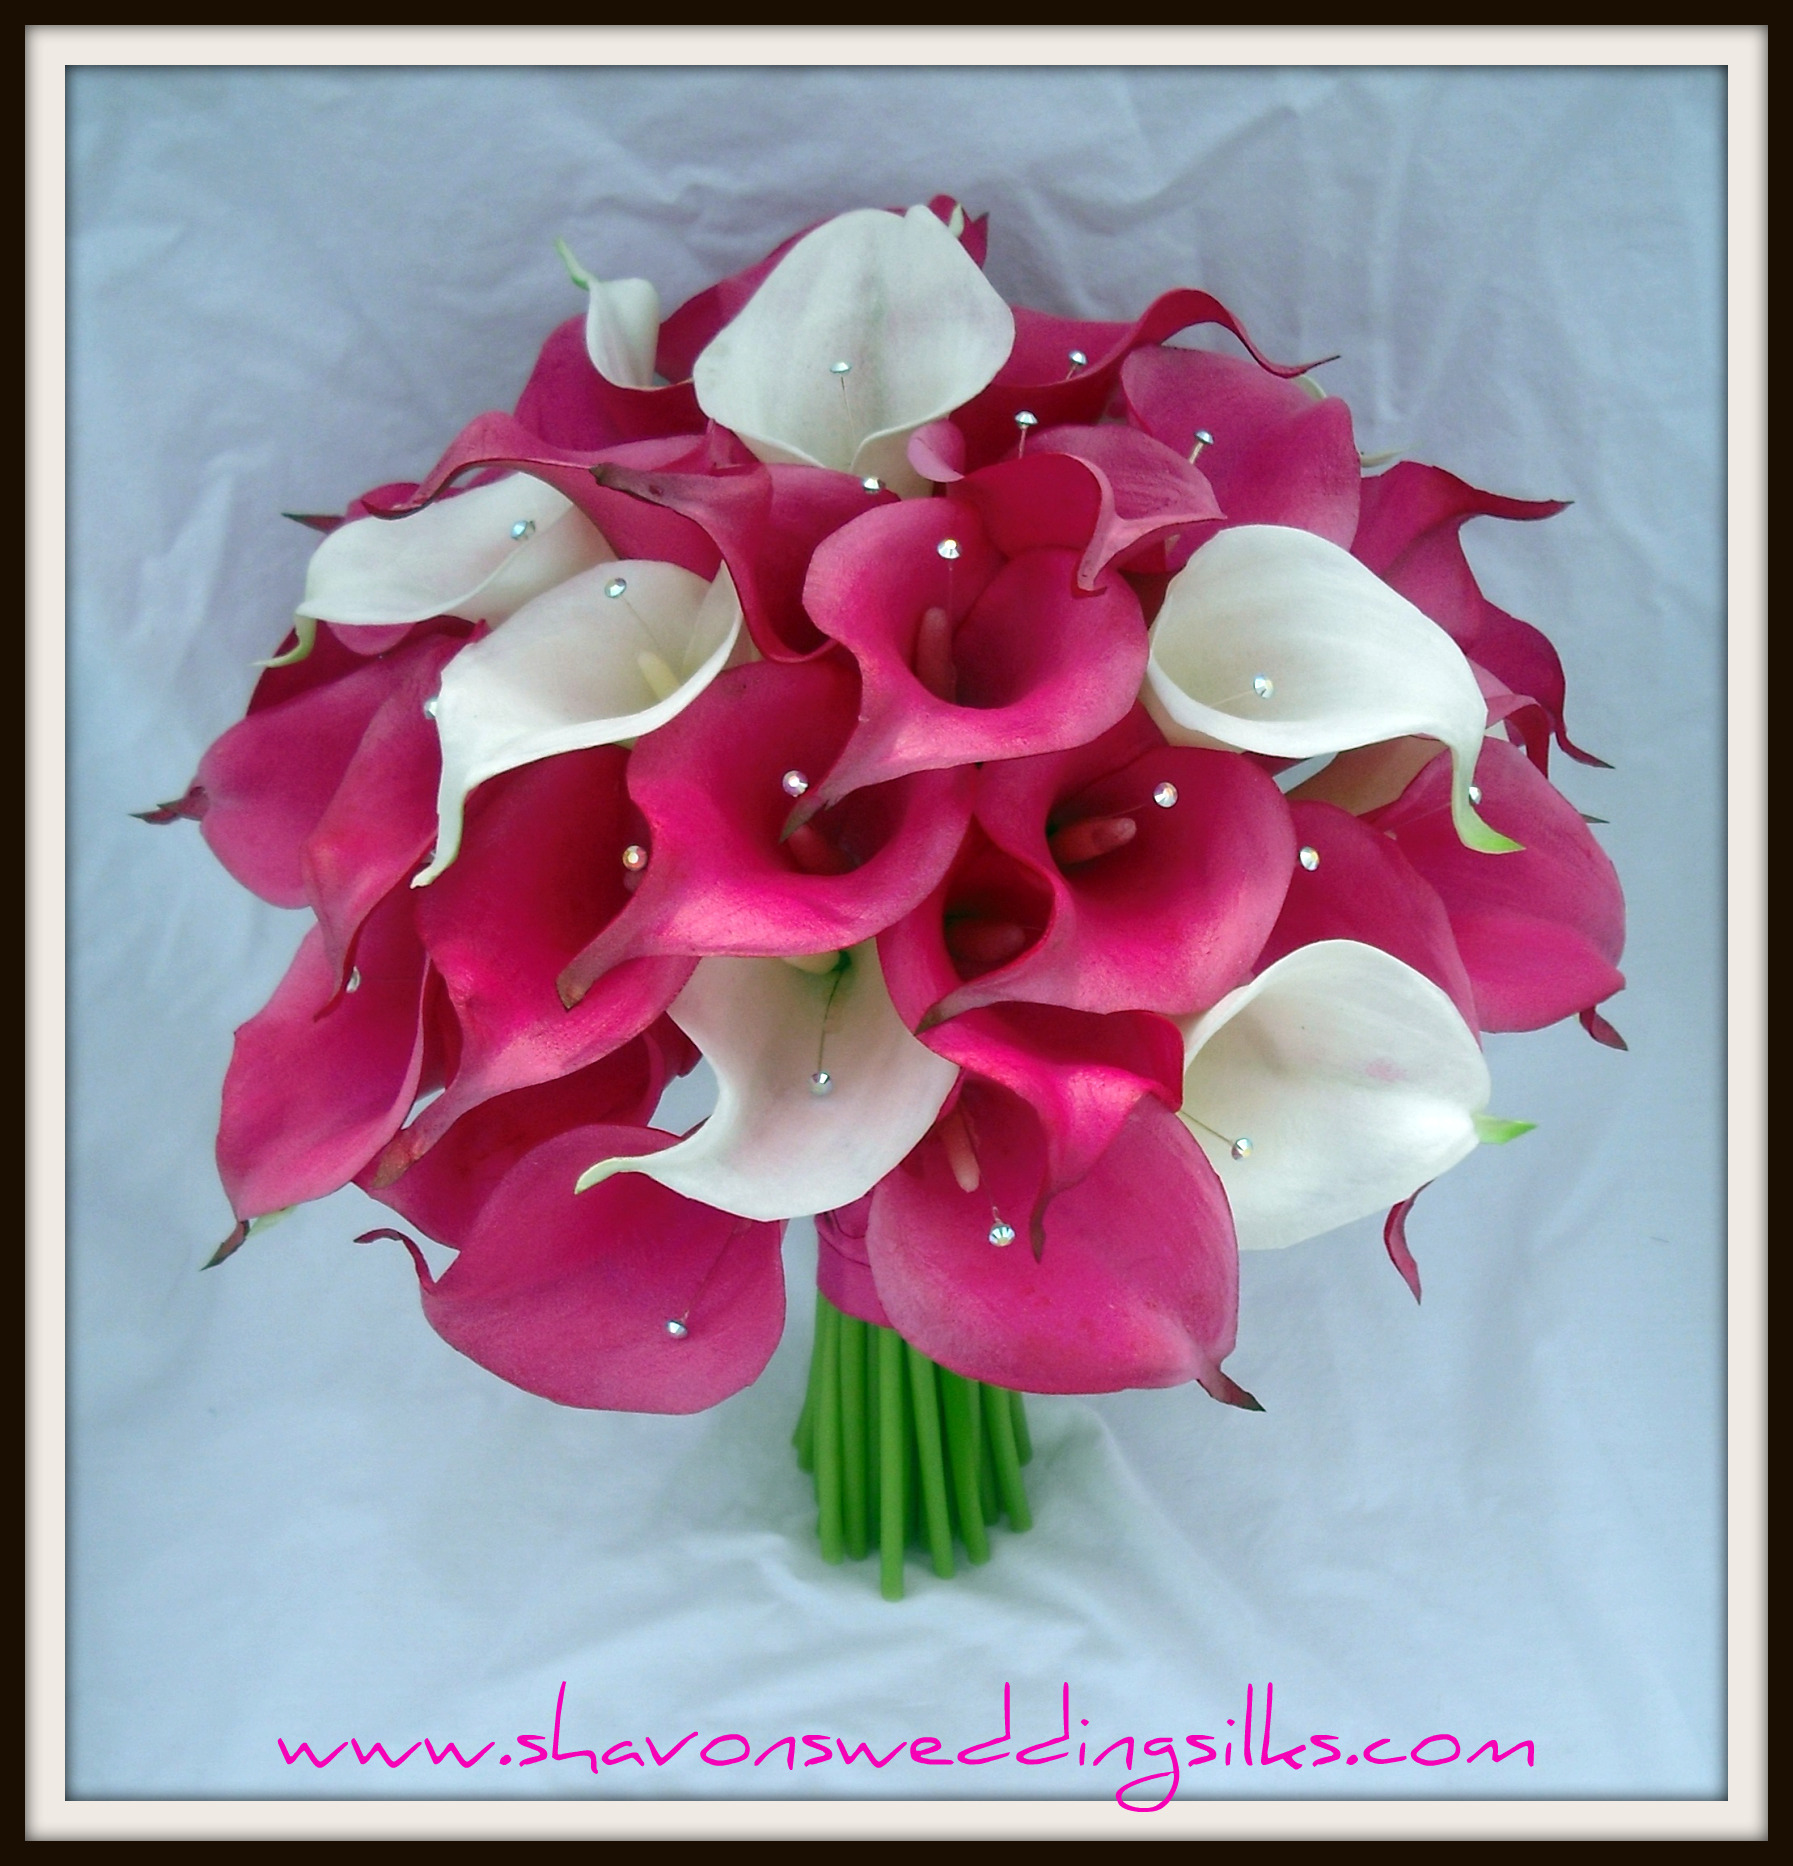 Flowers & Decor, white, pink, Bride Bouquets, Flowers, Bouquet, Wedding, Calla, Lilies, Cream, Natural, Bling, Crystals, Fuchsia, Touch, Shavons wedding silks, Floramatique